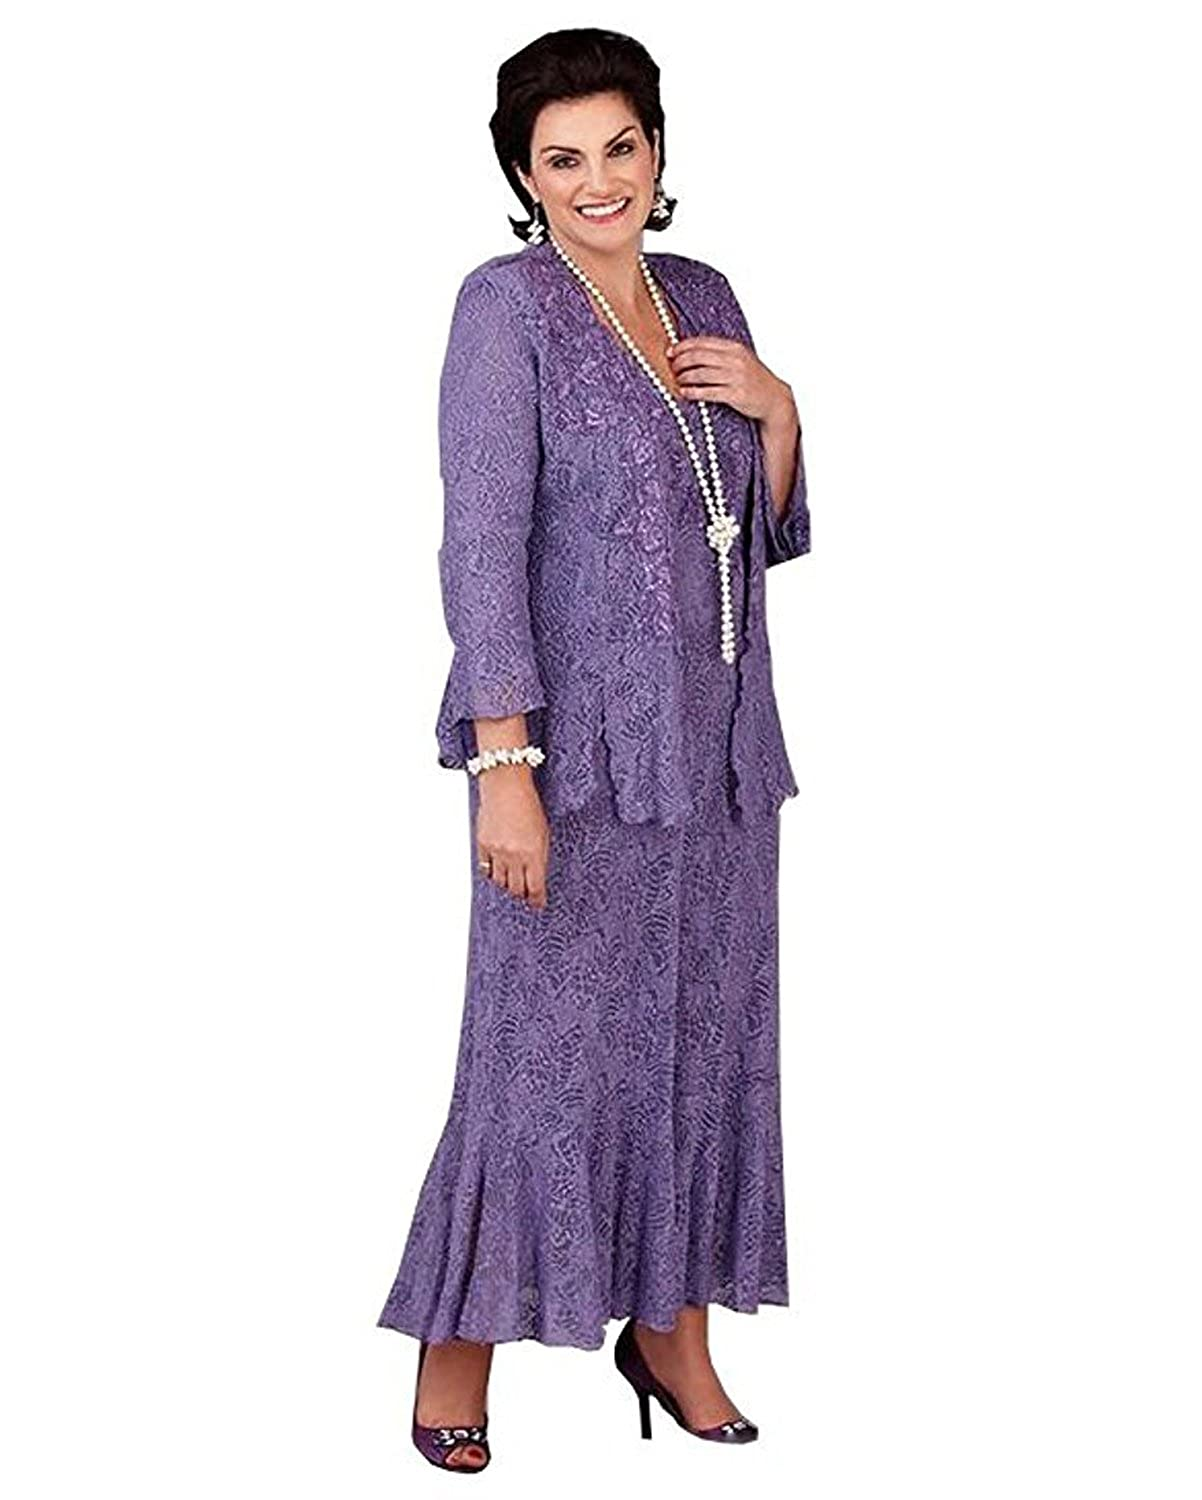 dressvip Round Neck Purple Lace 3/4 Sleeves Mother Of The Bride Suits For Women